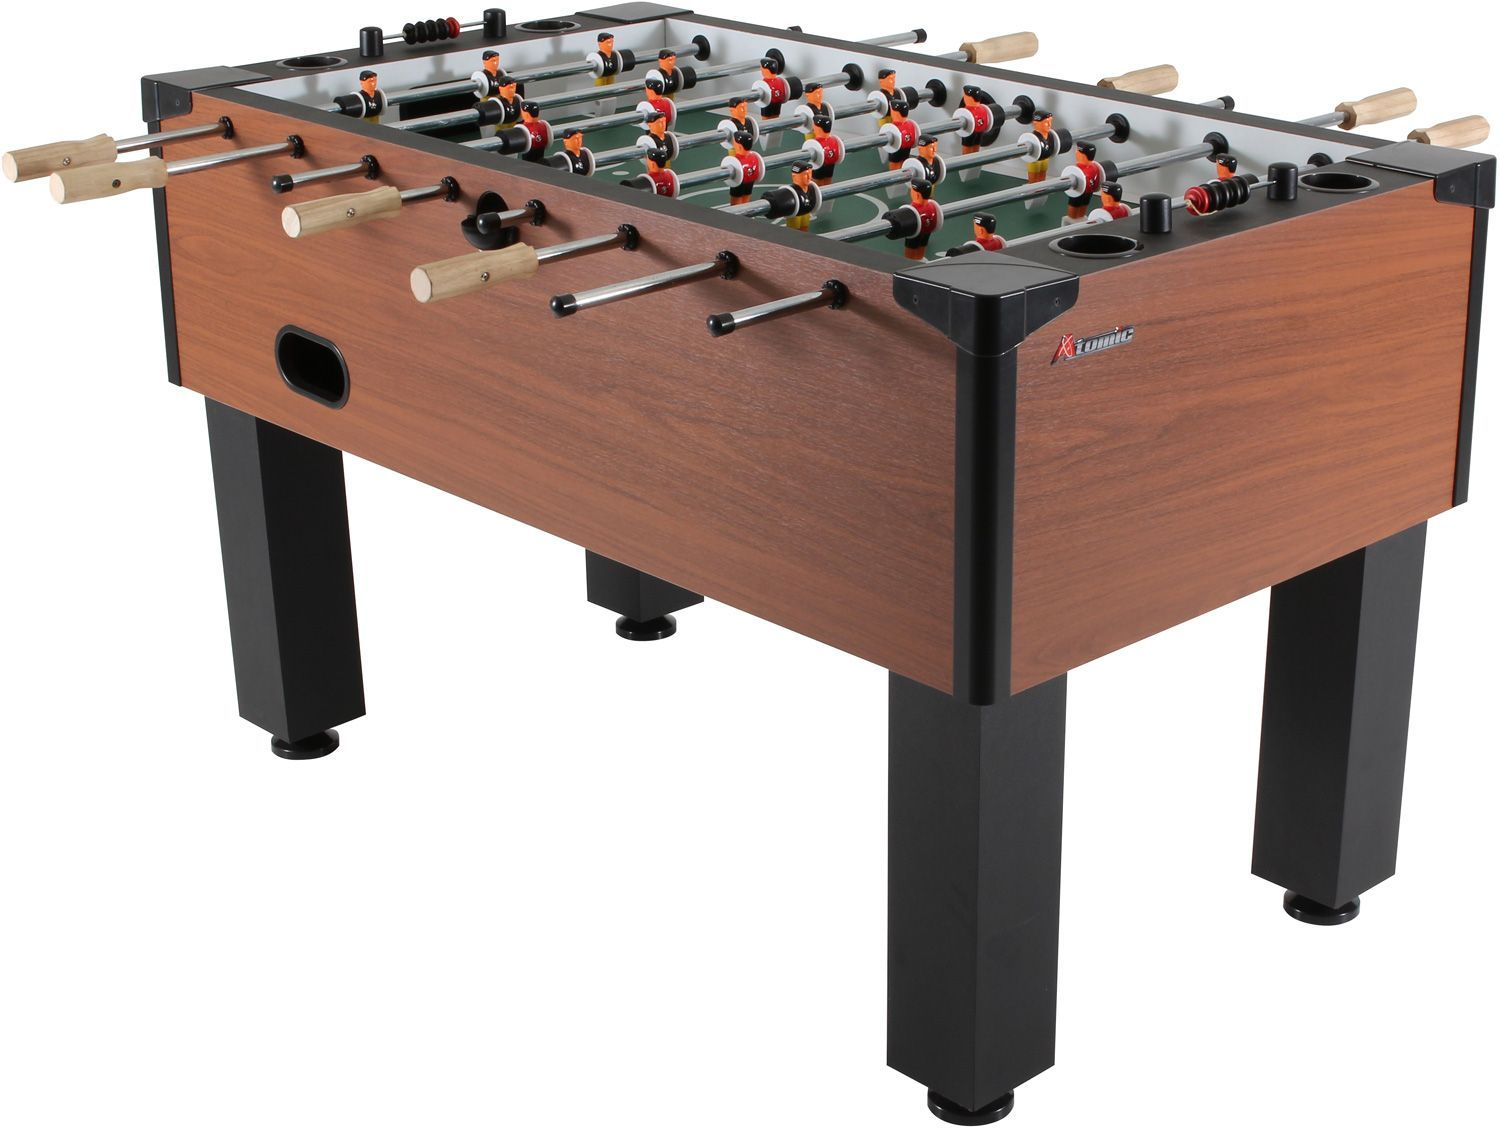 Atomic Gladiator Foosball Table Table Games Arcade Games For